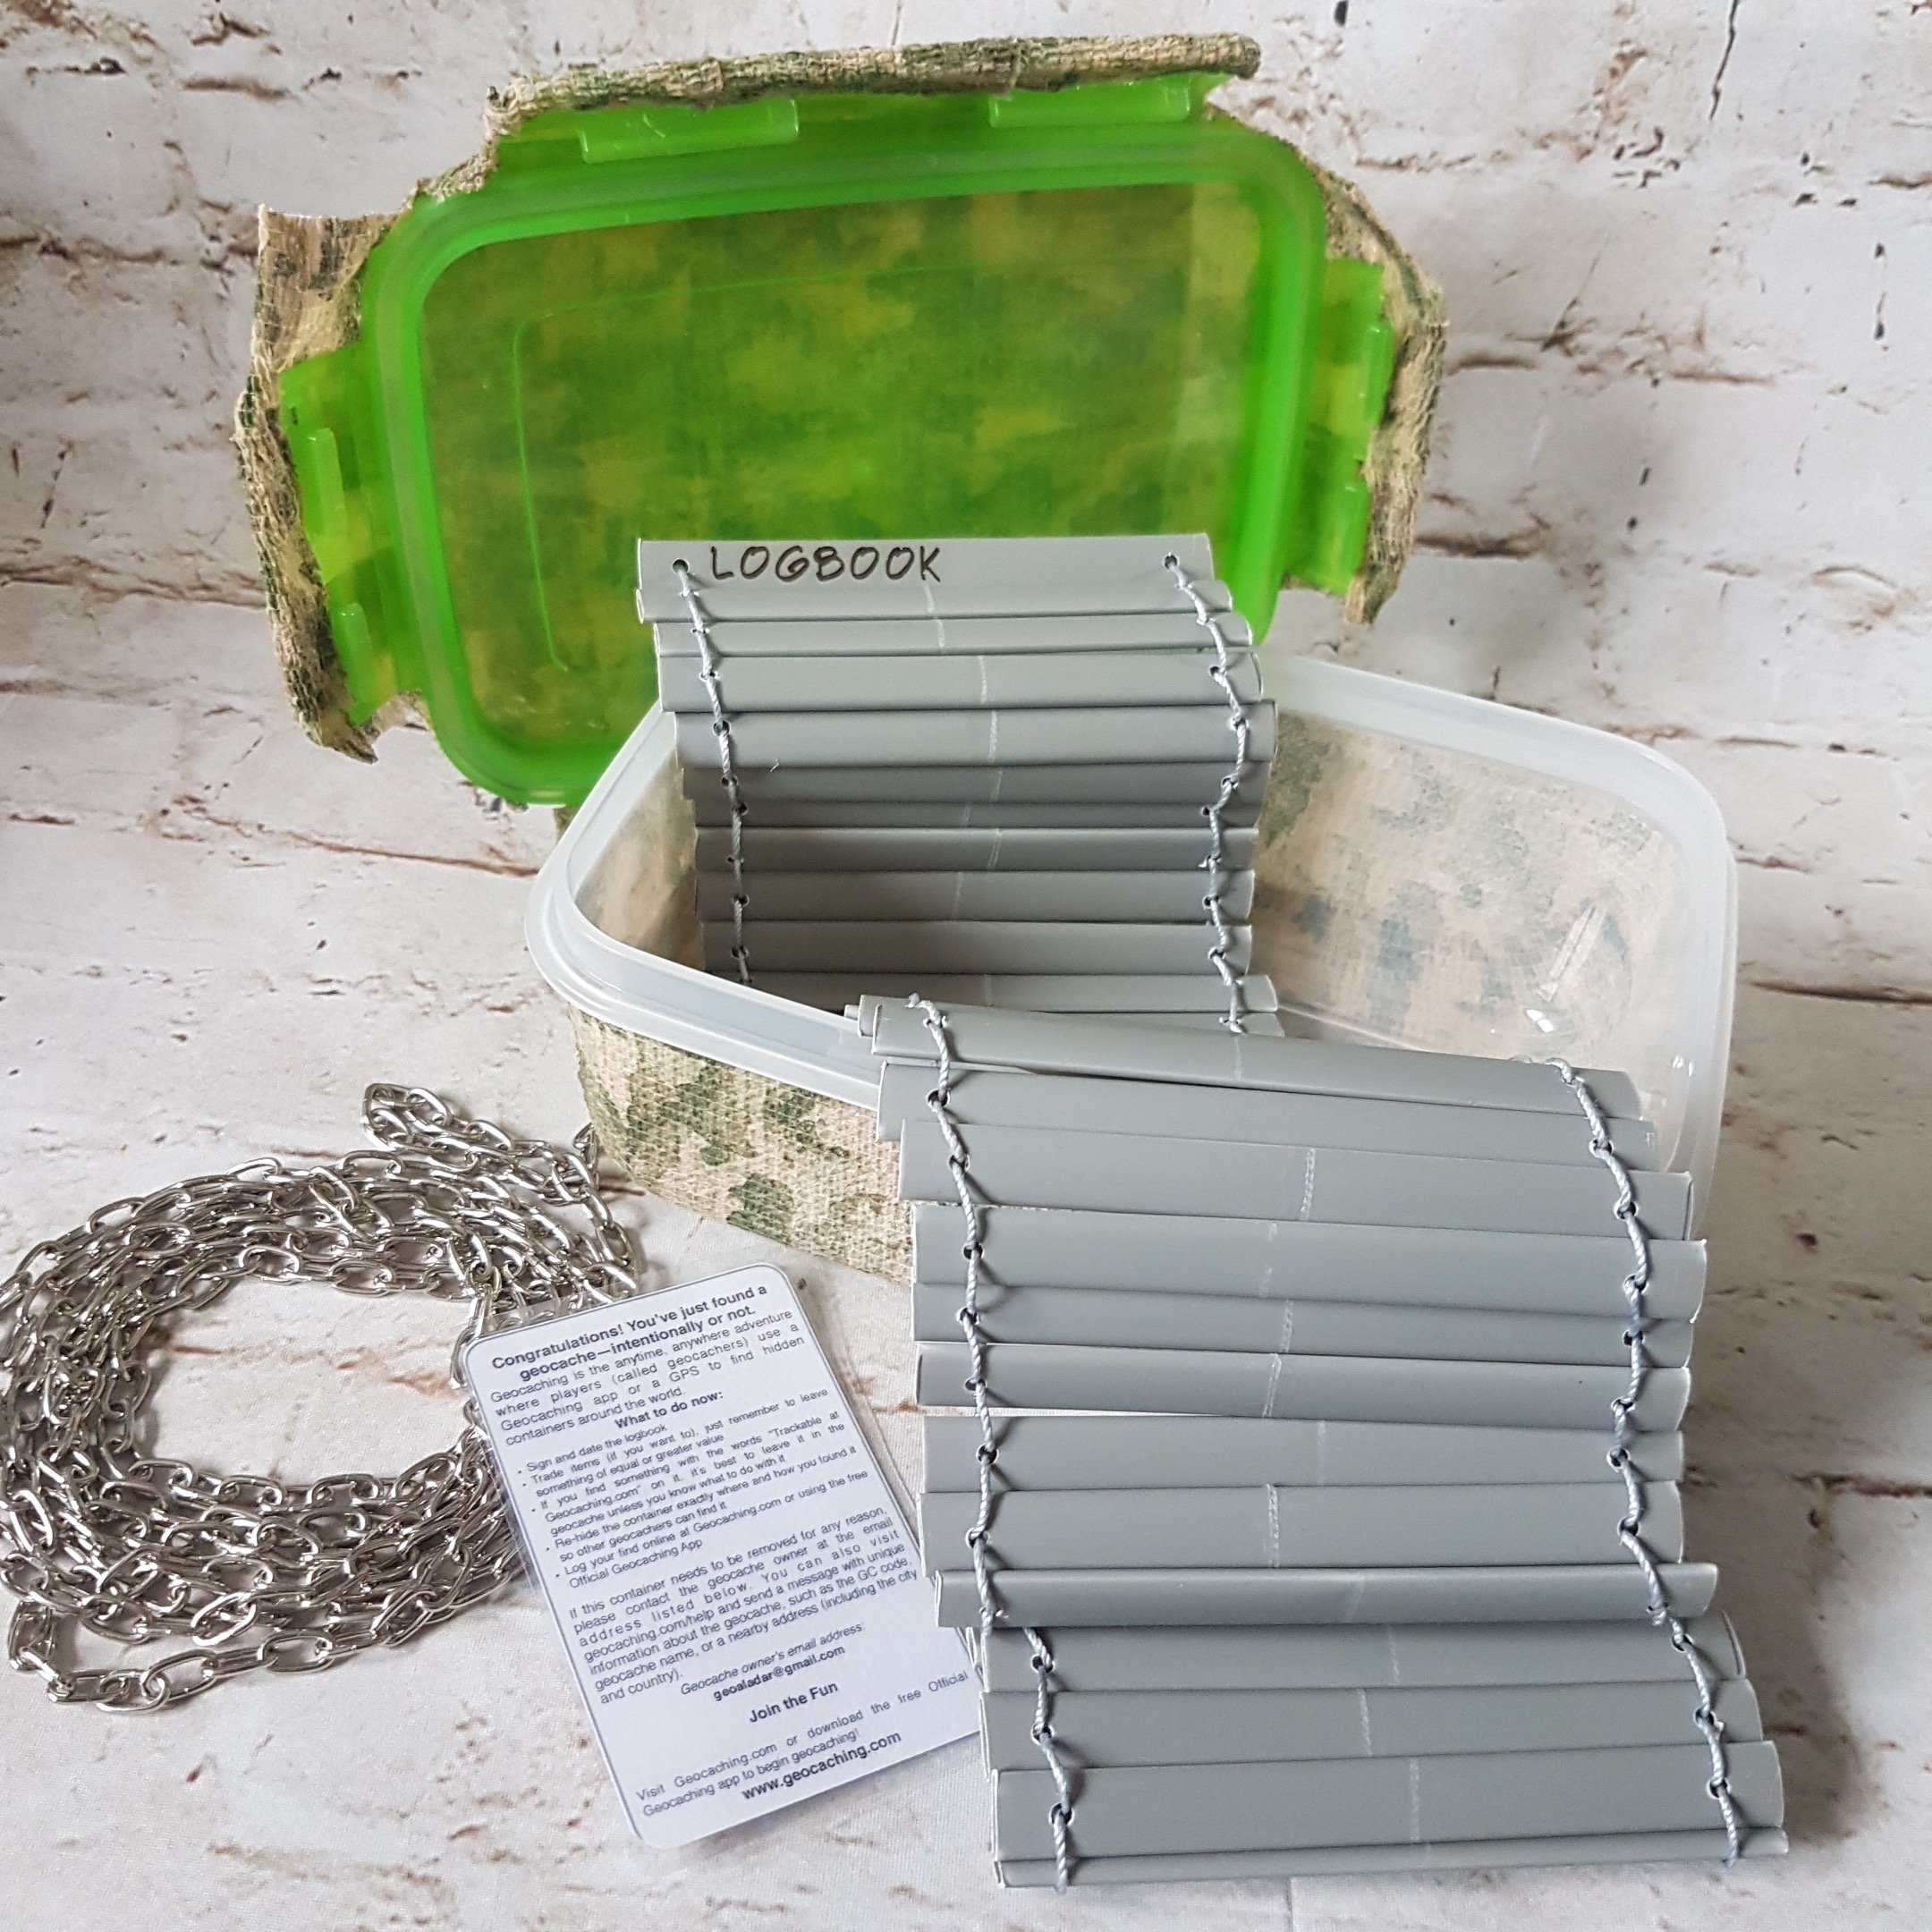 #Geocache container #camouflaged with a #chain, log rolled out - itstartswithacoffee.com #geocaching #DIY